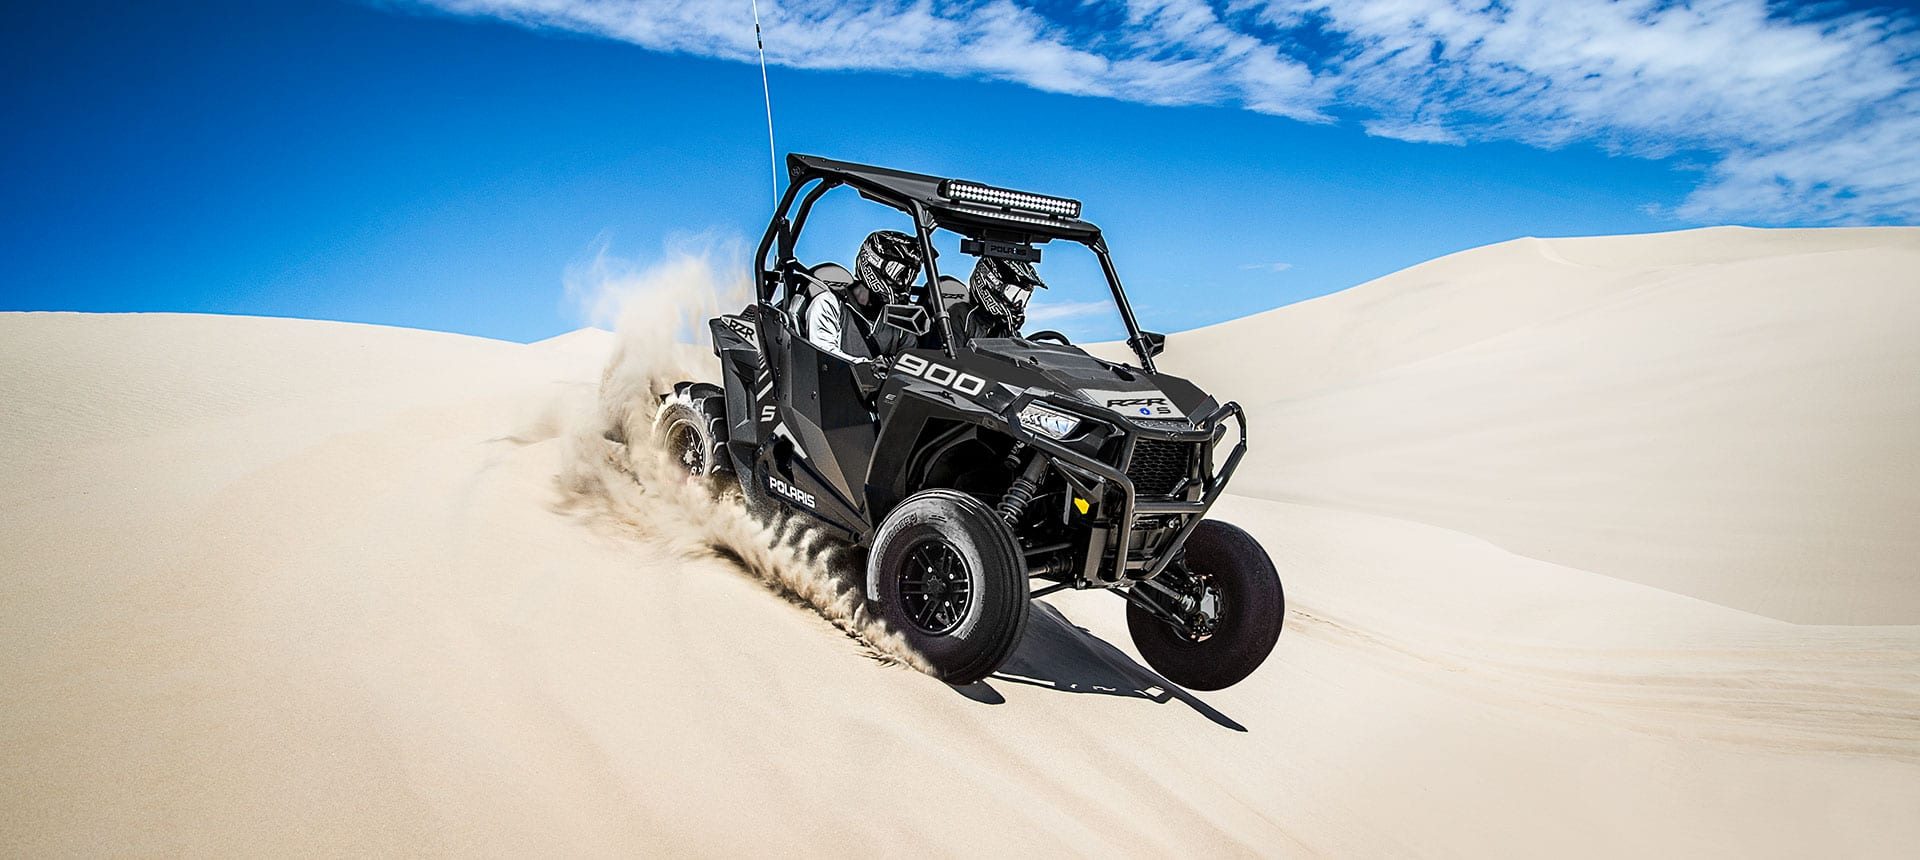 RZR S 900 OFFROAD VEHICLE